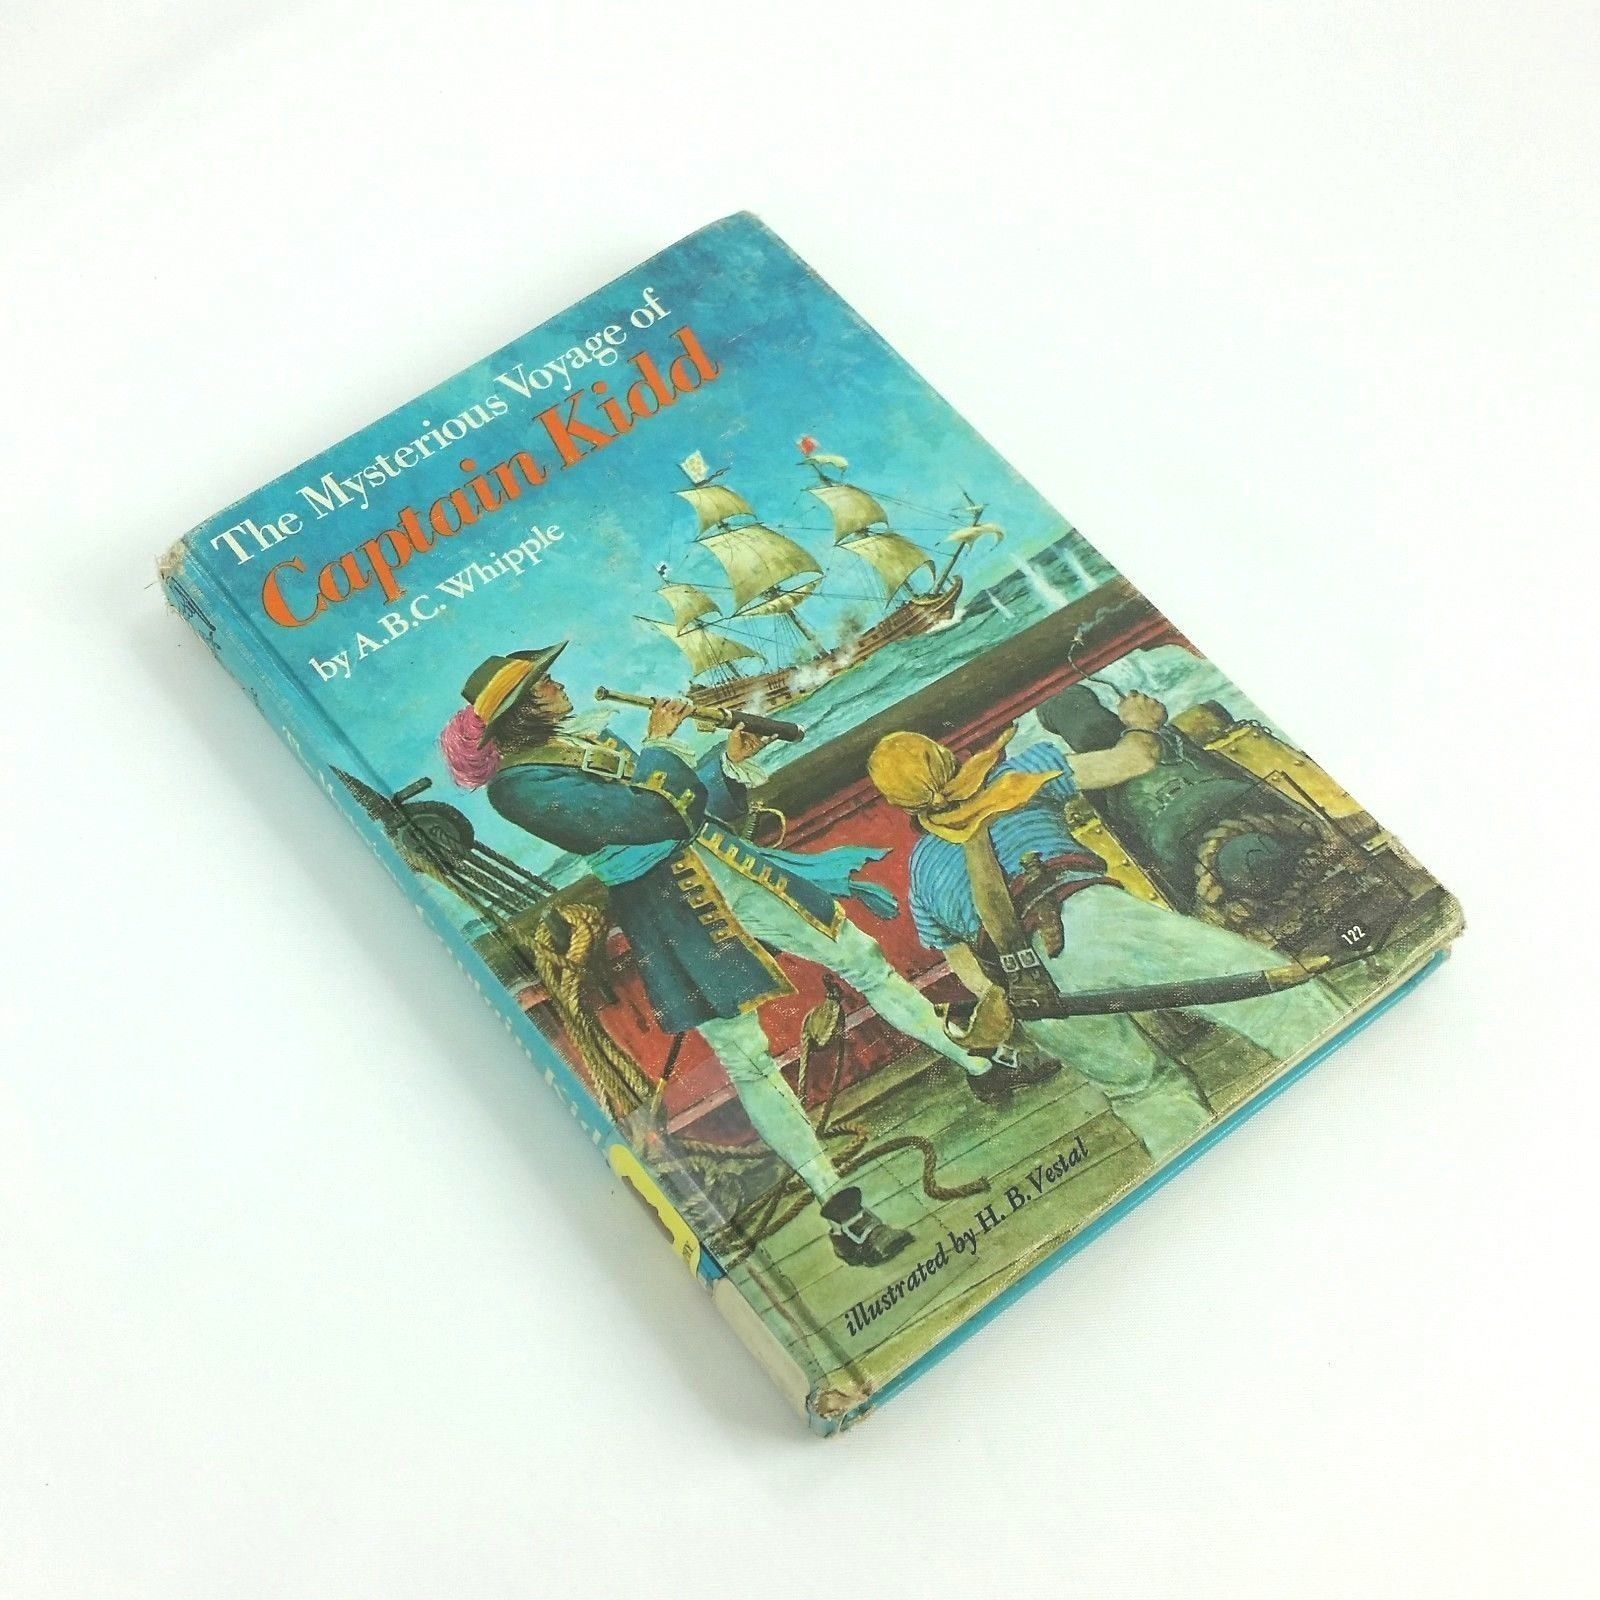 The Mysterious Voyage of Captain Kid 1970 Childrens Vintage Book ABC Whipple HC